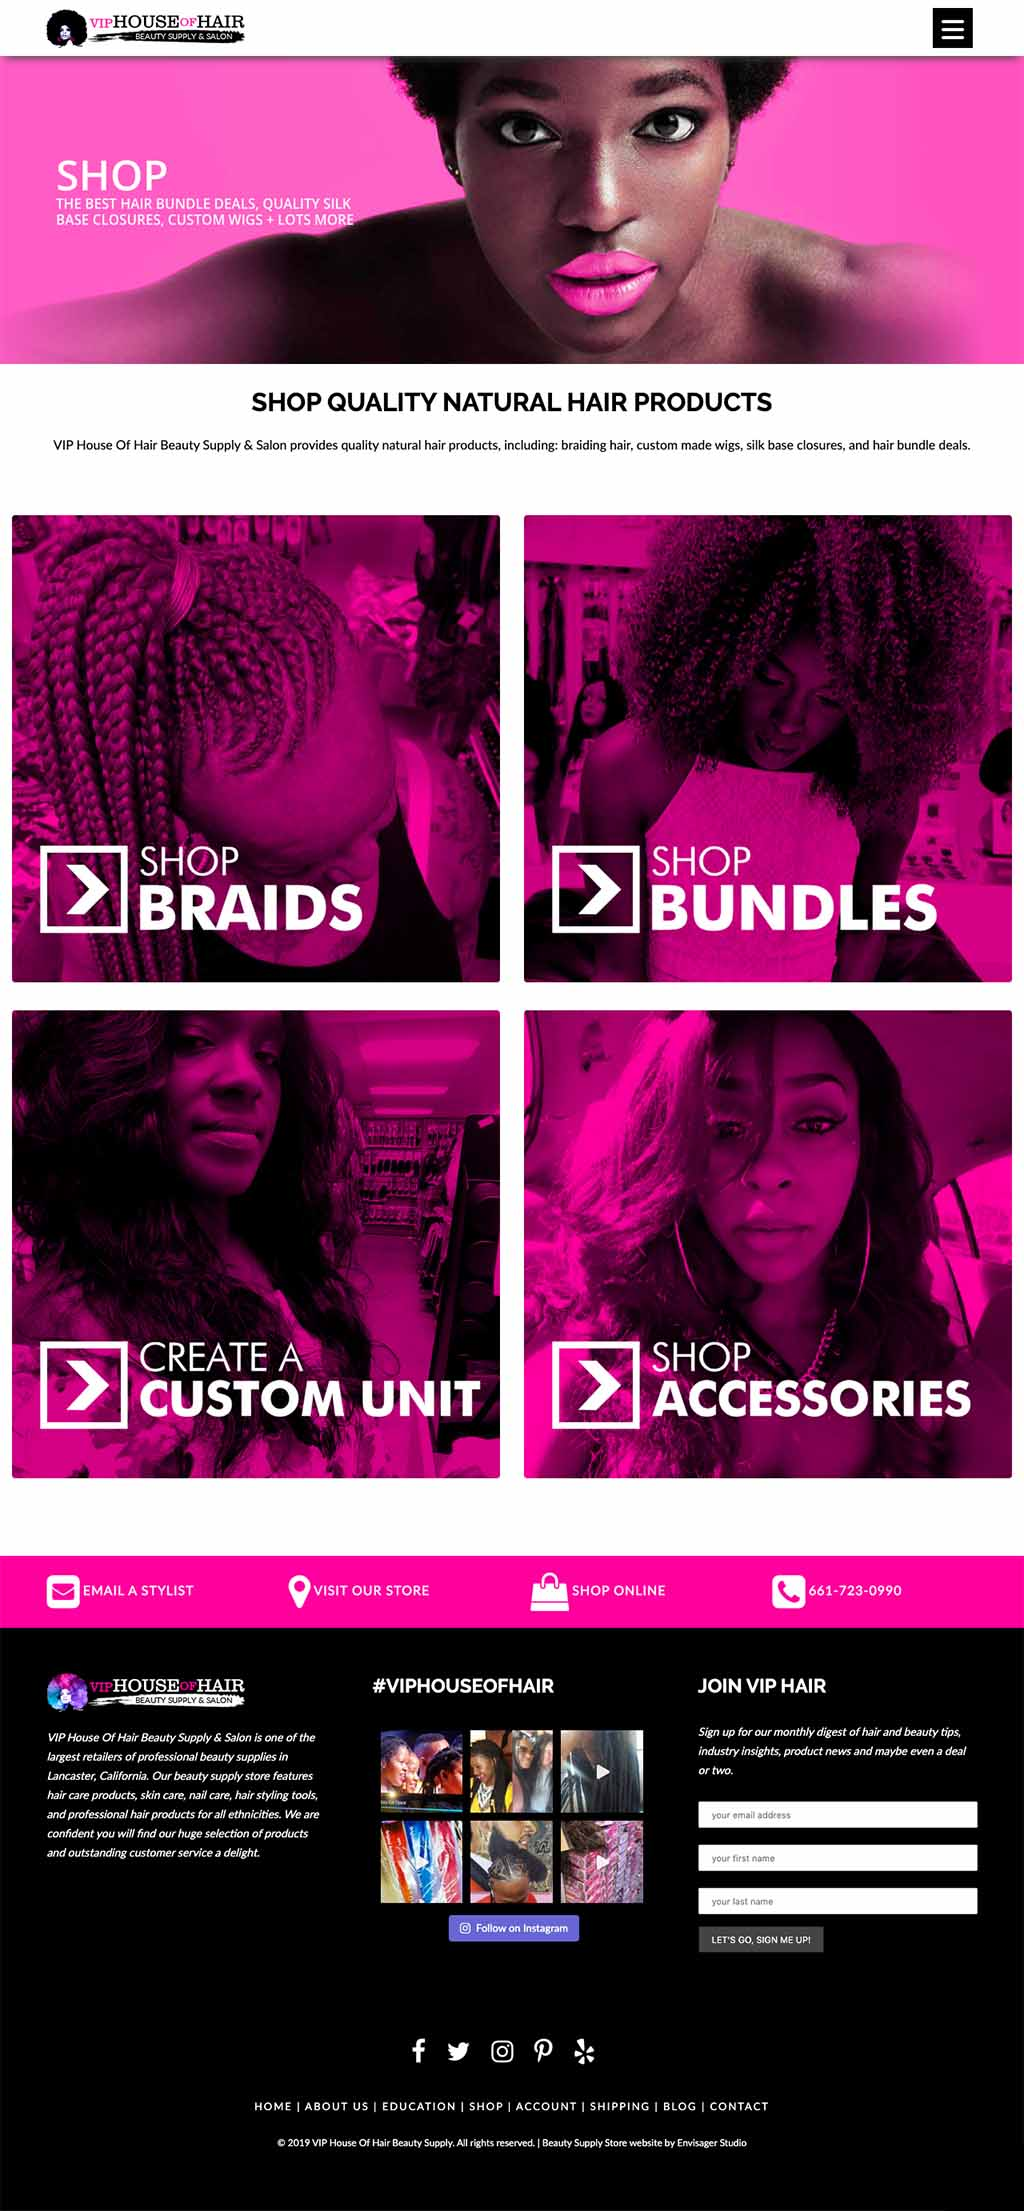 Beauty Supply Store Website Design